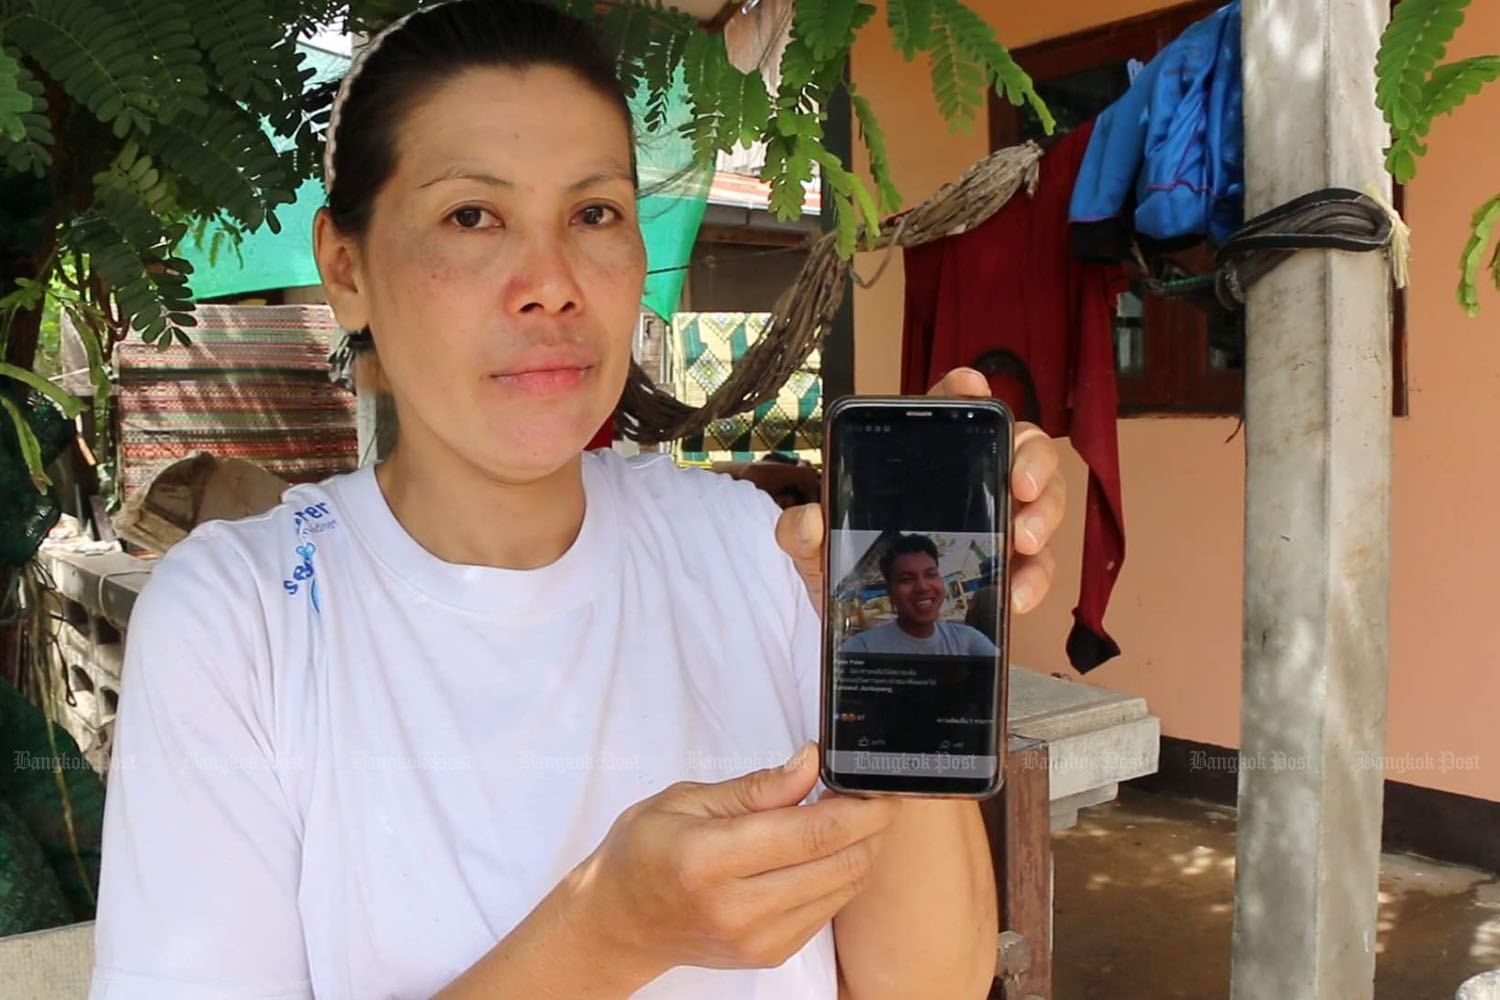 Silakorn Chanthopaeng on Sunday shows a picture of her son Sarawut, who died of electrocution as he was helping other people to escape floodwater in Ban Phan district in Khon Kaen. (Photo by Chakrapan Nathanri)